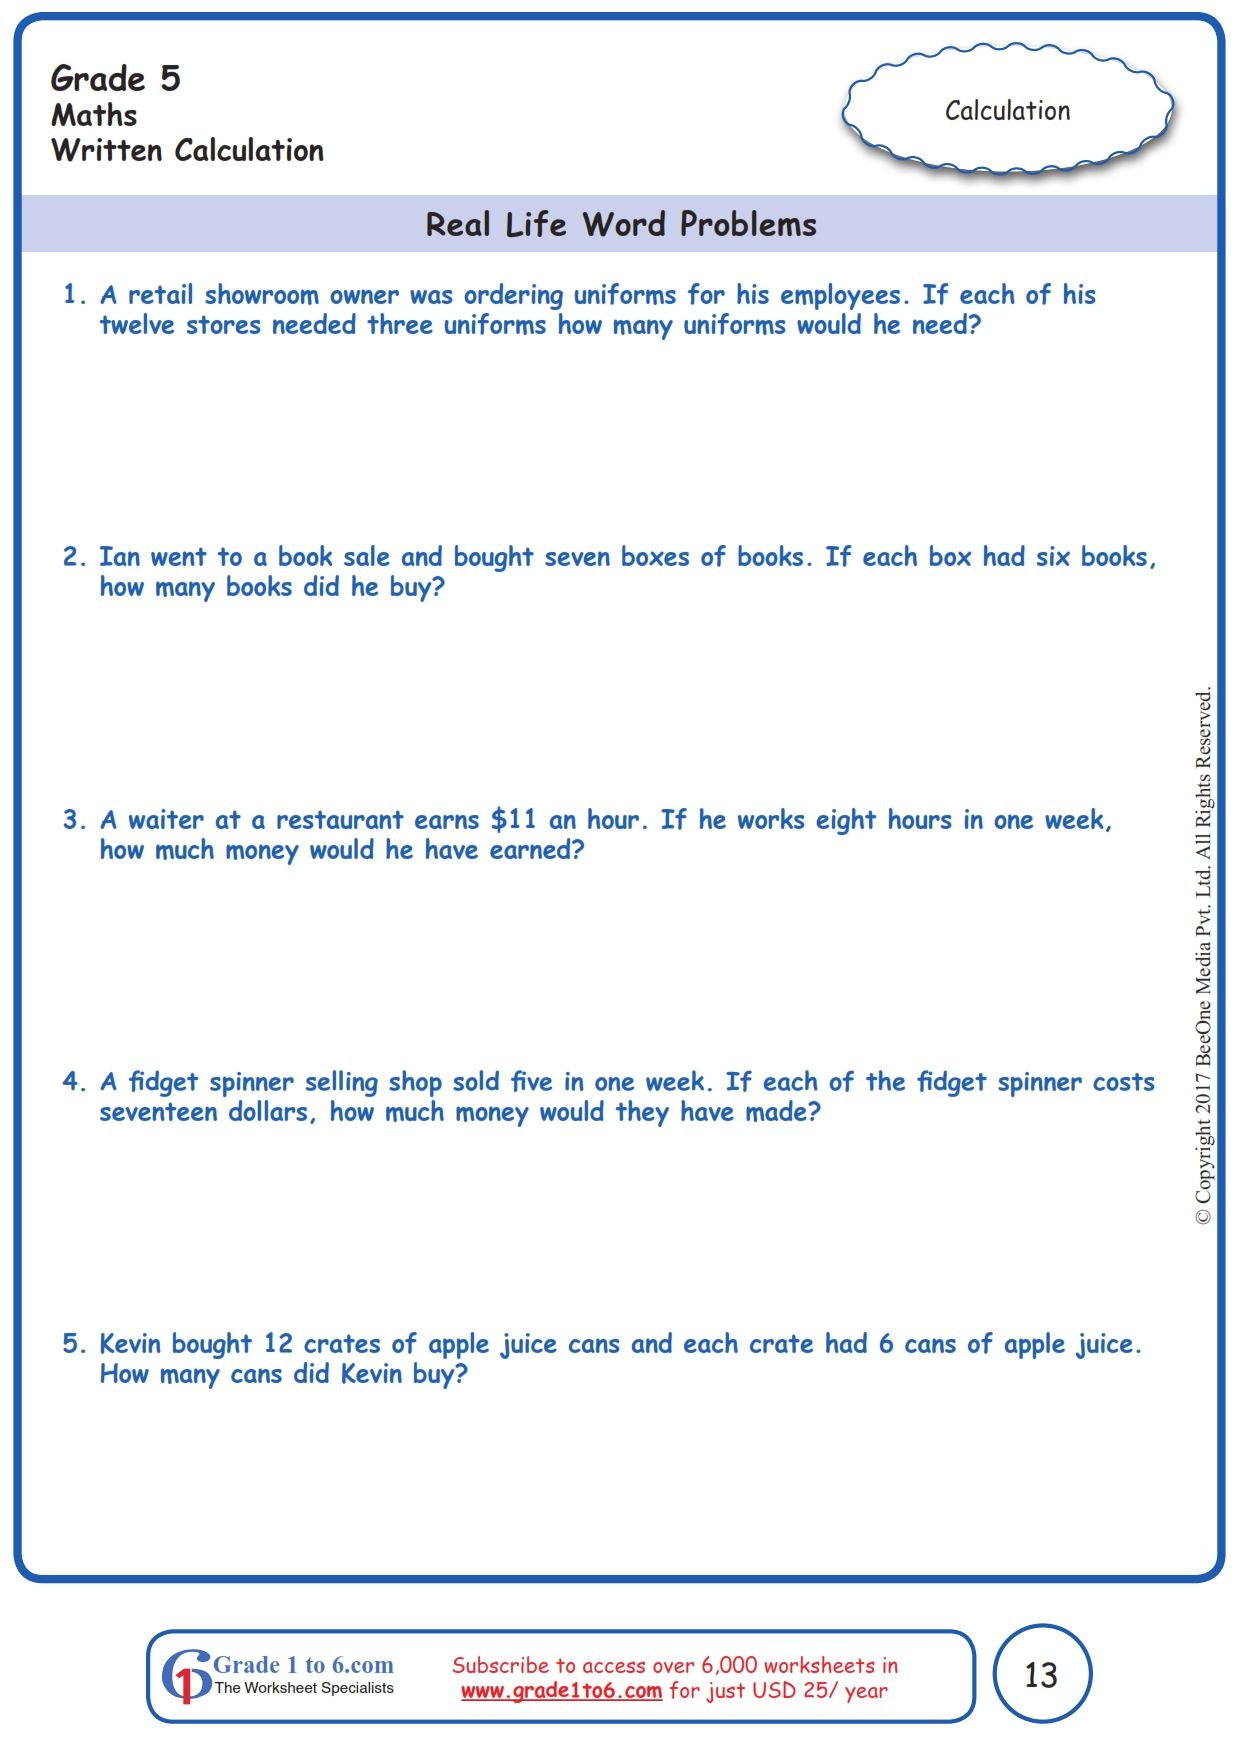 small resolution of Worksheet Grade 5 Math Real Life Word Problems   Basic math worksheets